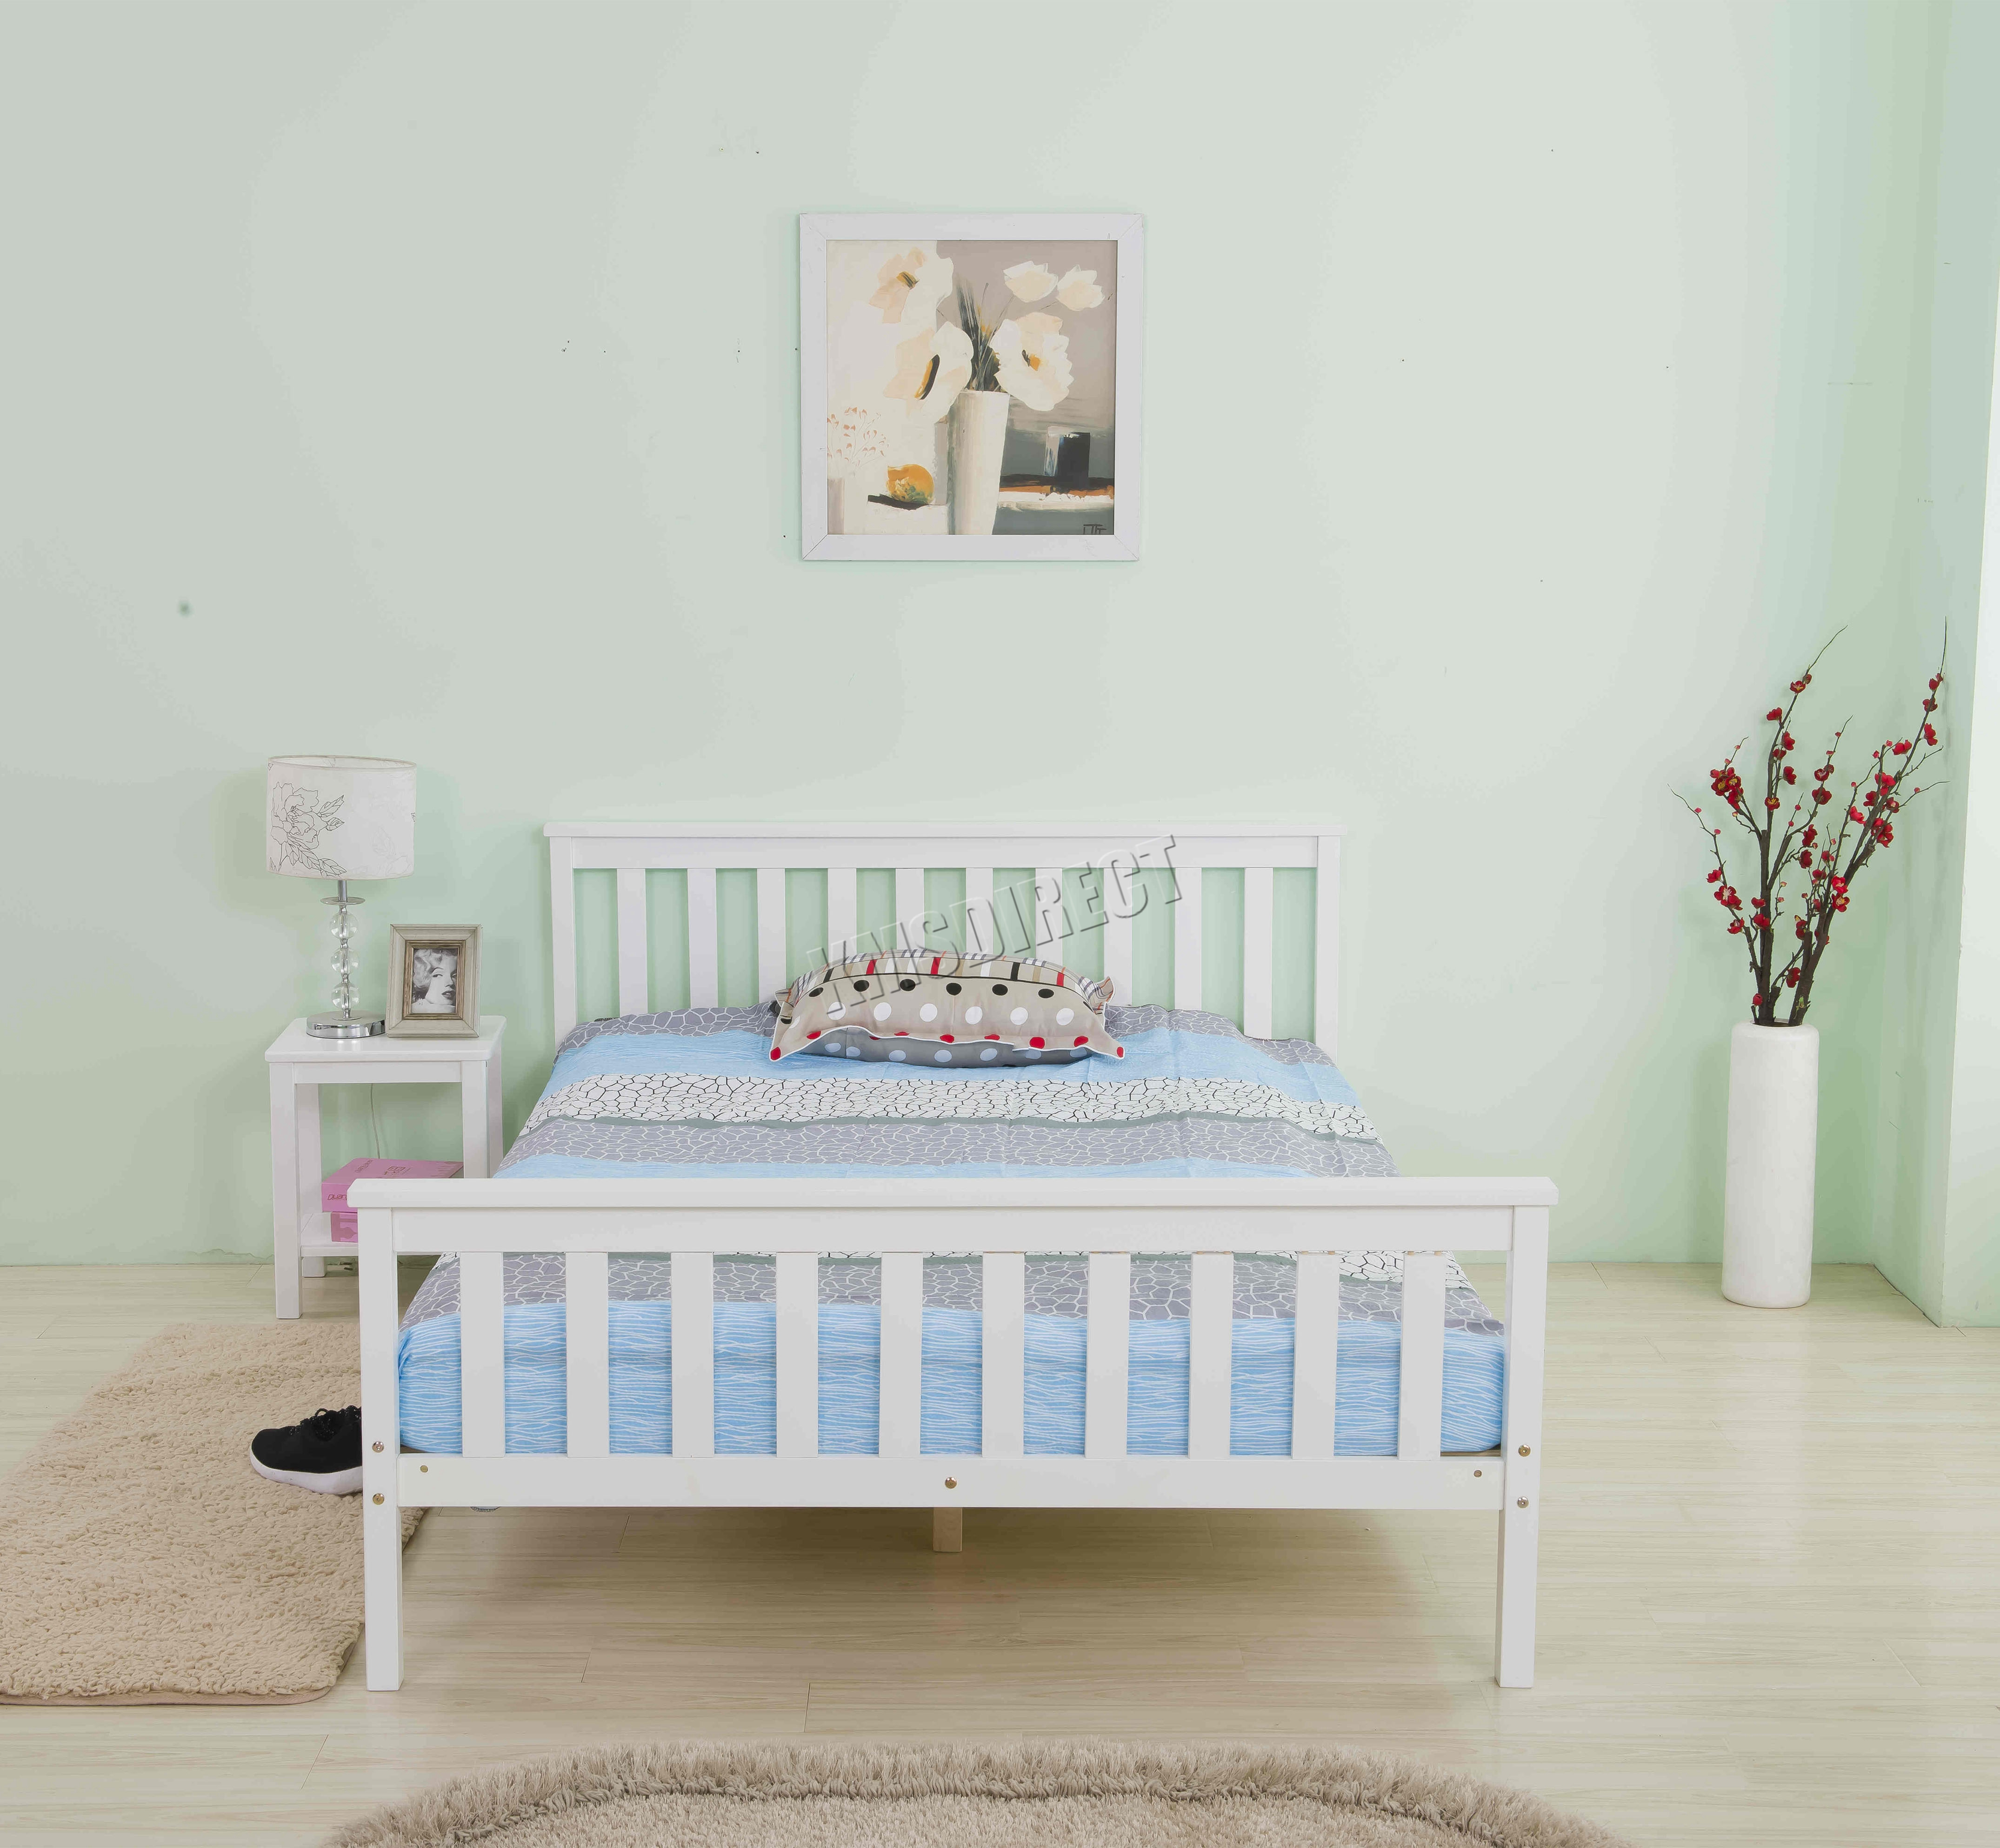 Foxhunter Wooden Bed Frame Solid Pine Bedroom Furniture Home Single Double White Ebay